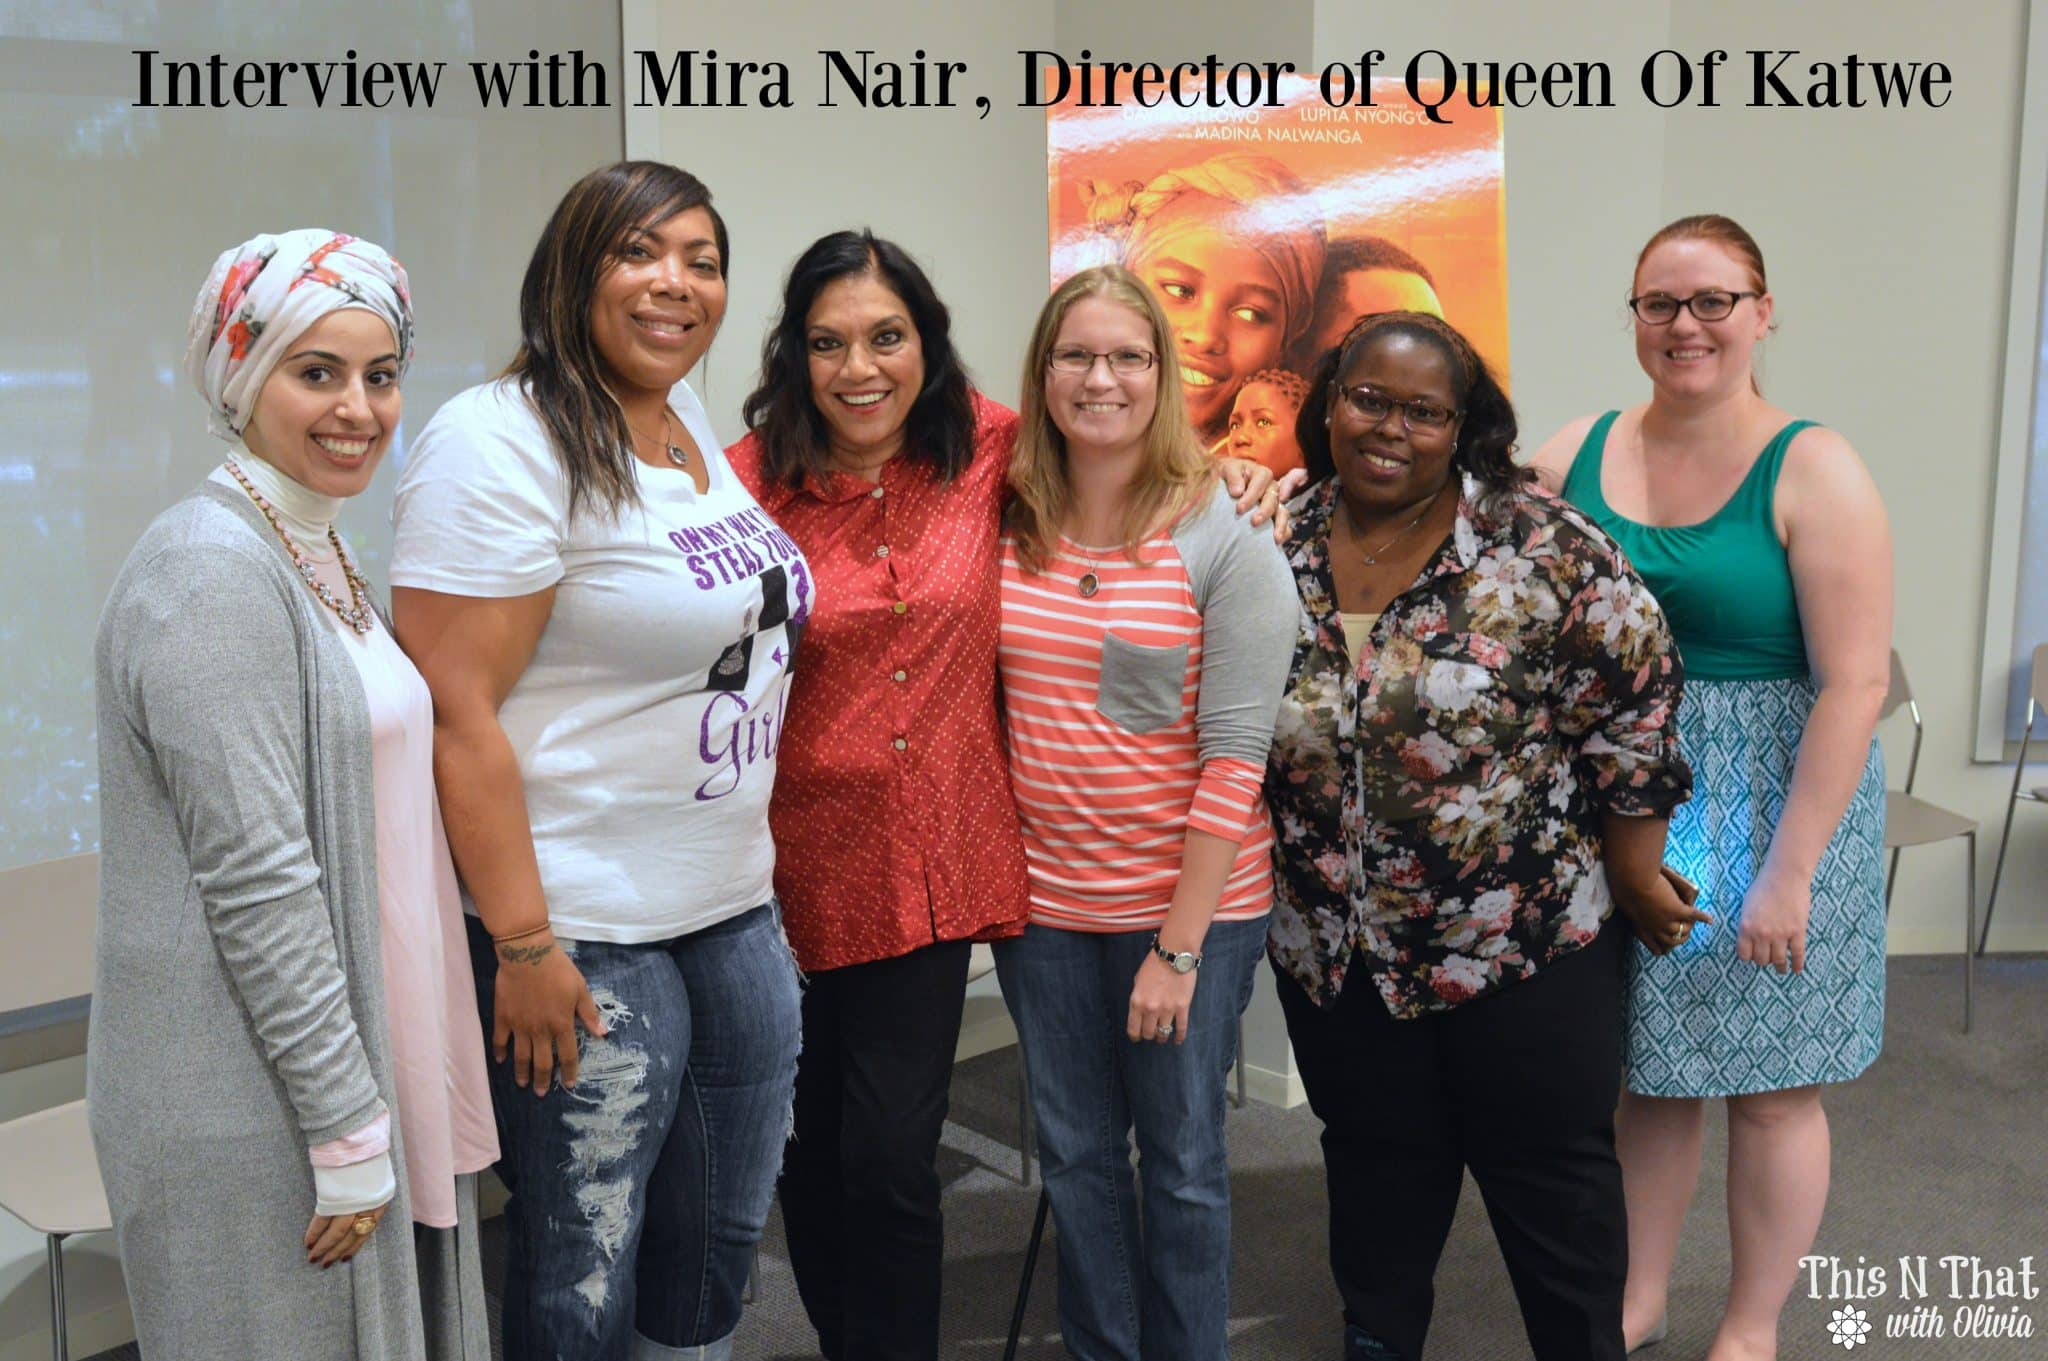 Interview with Mira Nair -- Director of Queen Of Katwe #QueenOfKatweEvent | ThisNThatwithOlivia.com